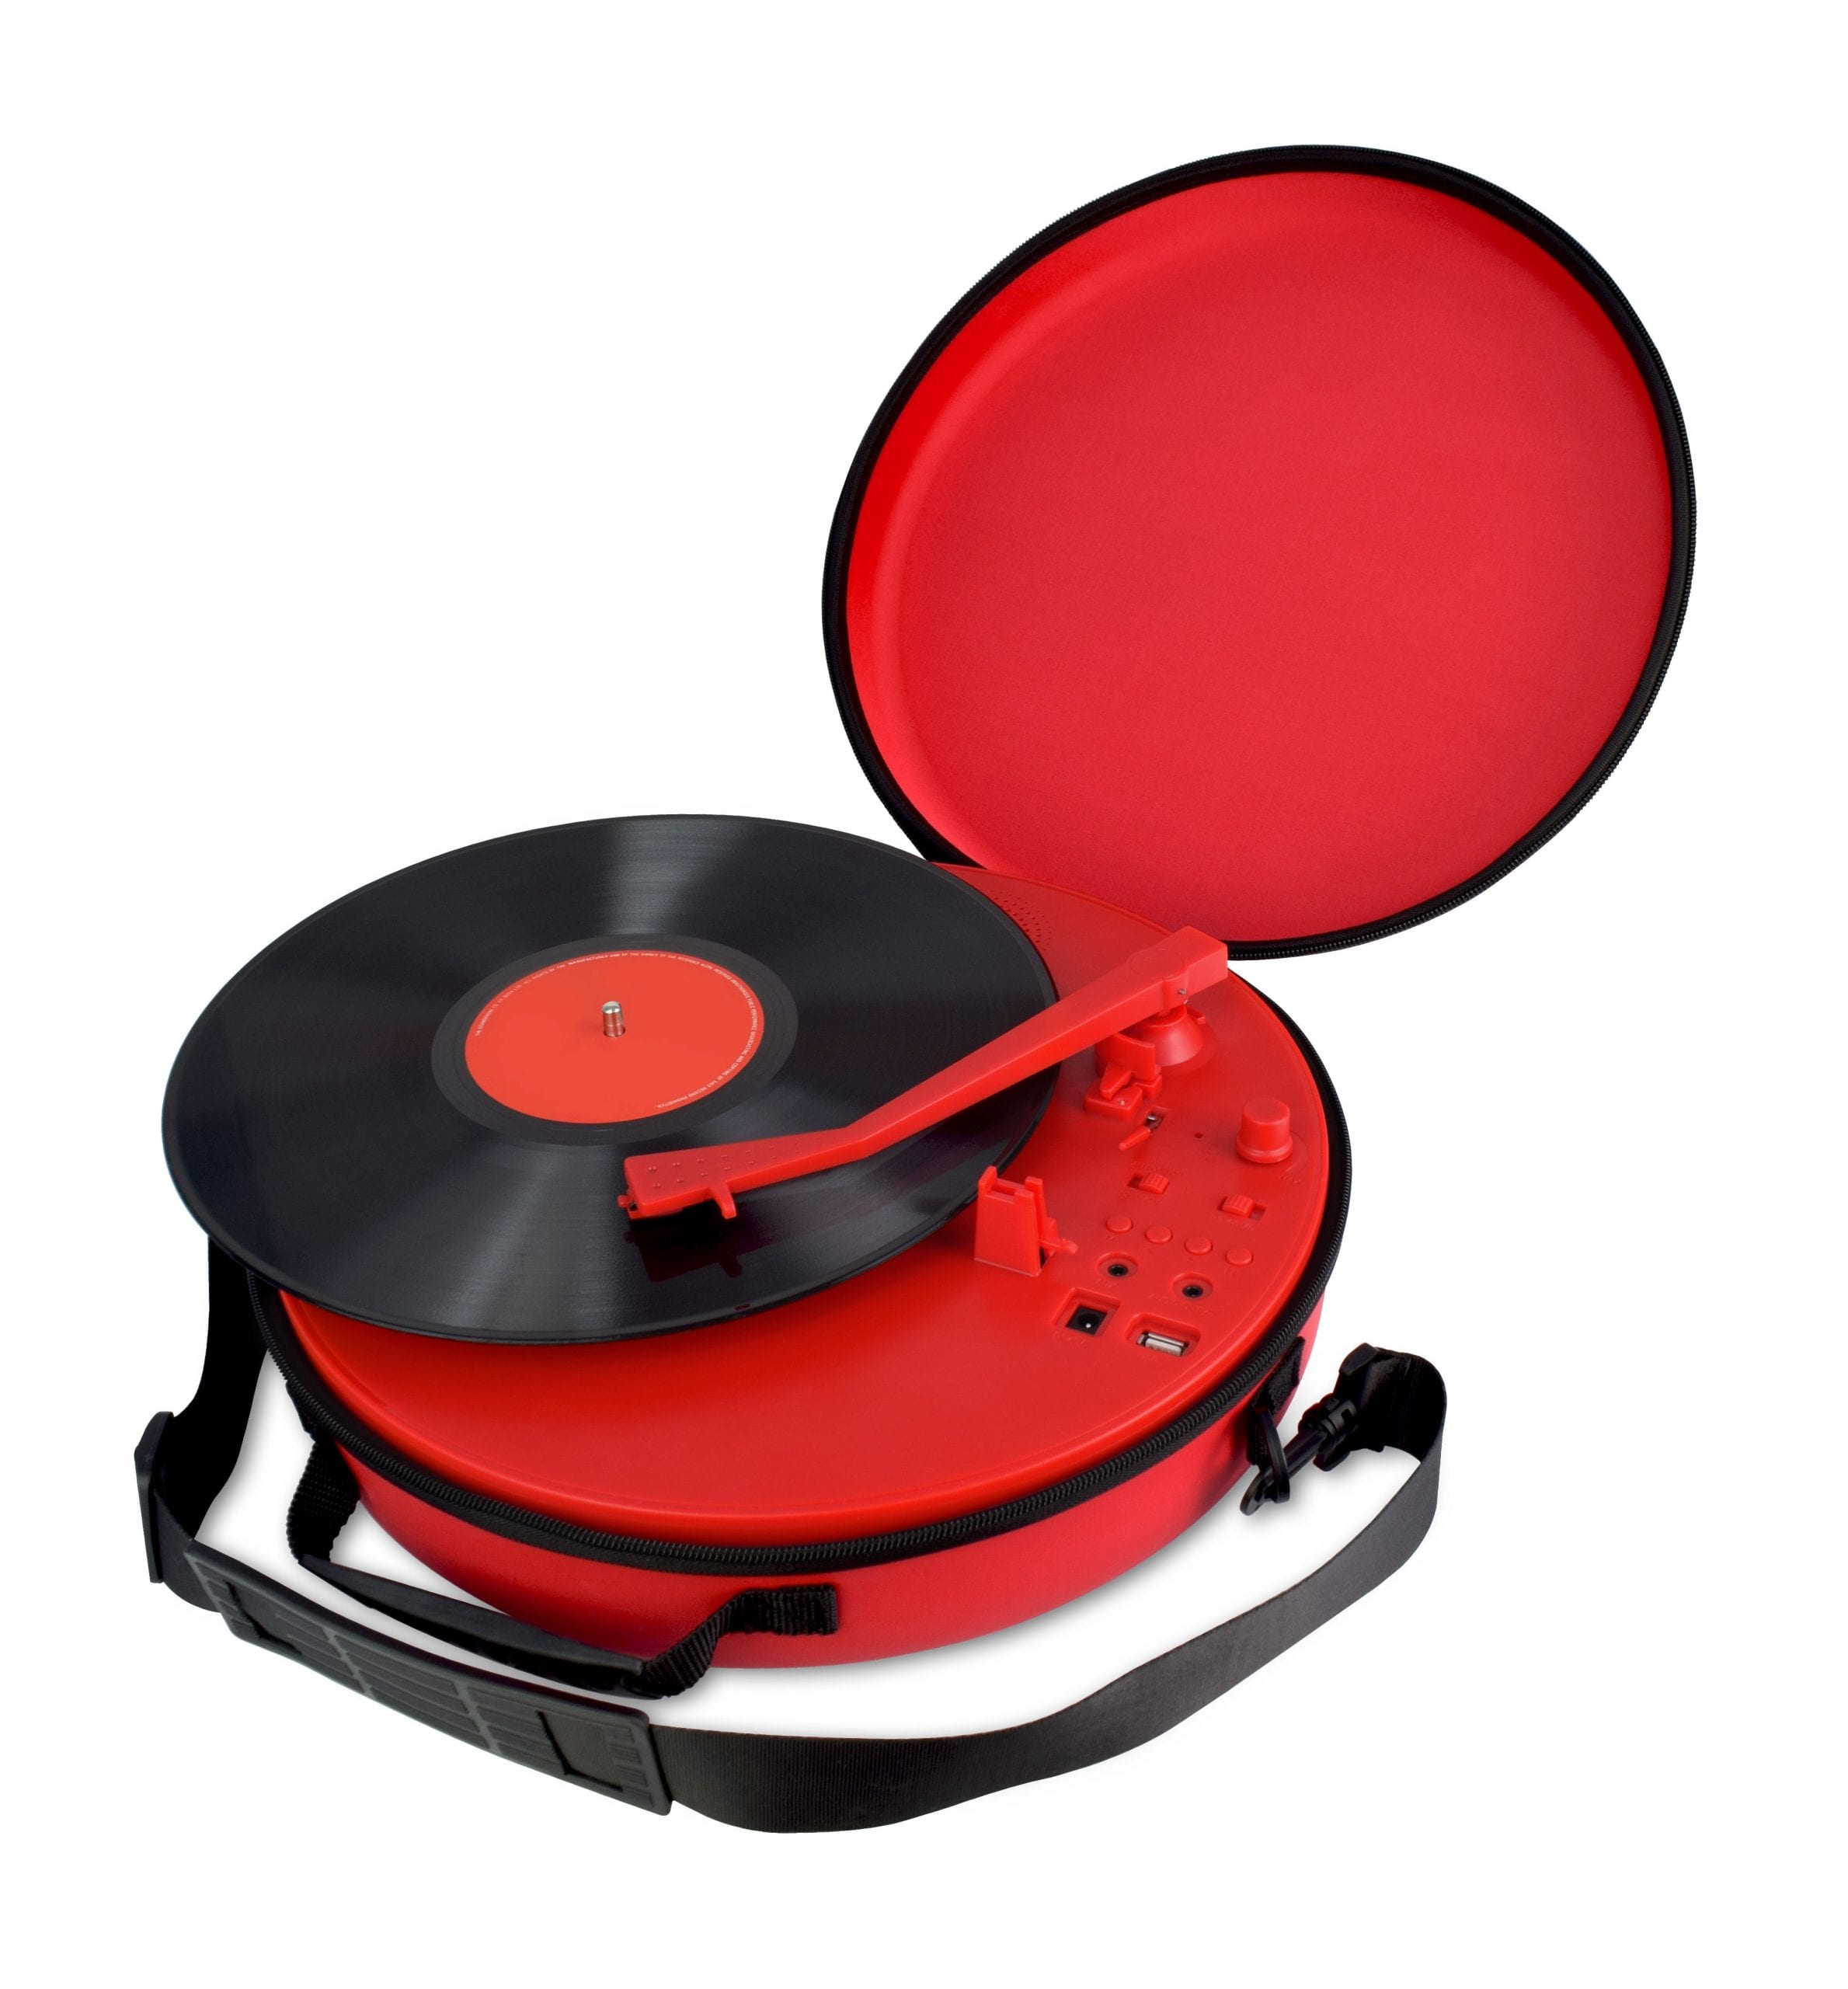 Coca Cola Turntable scaled